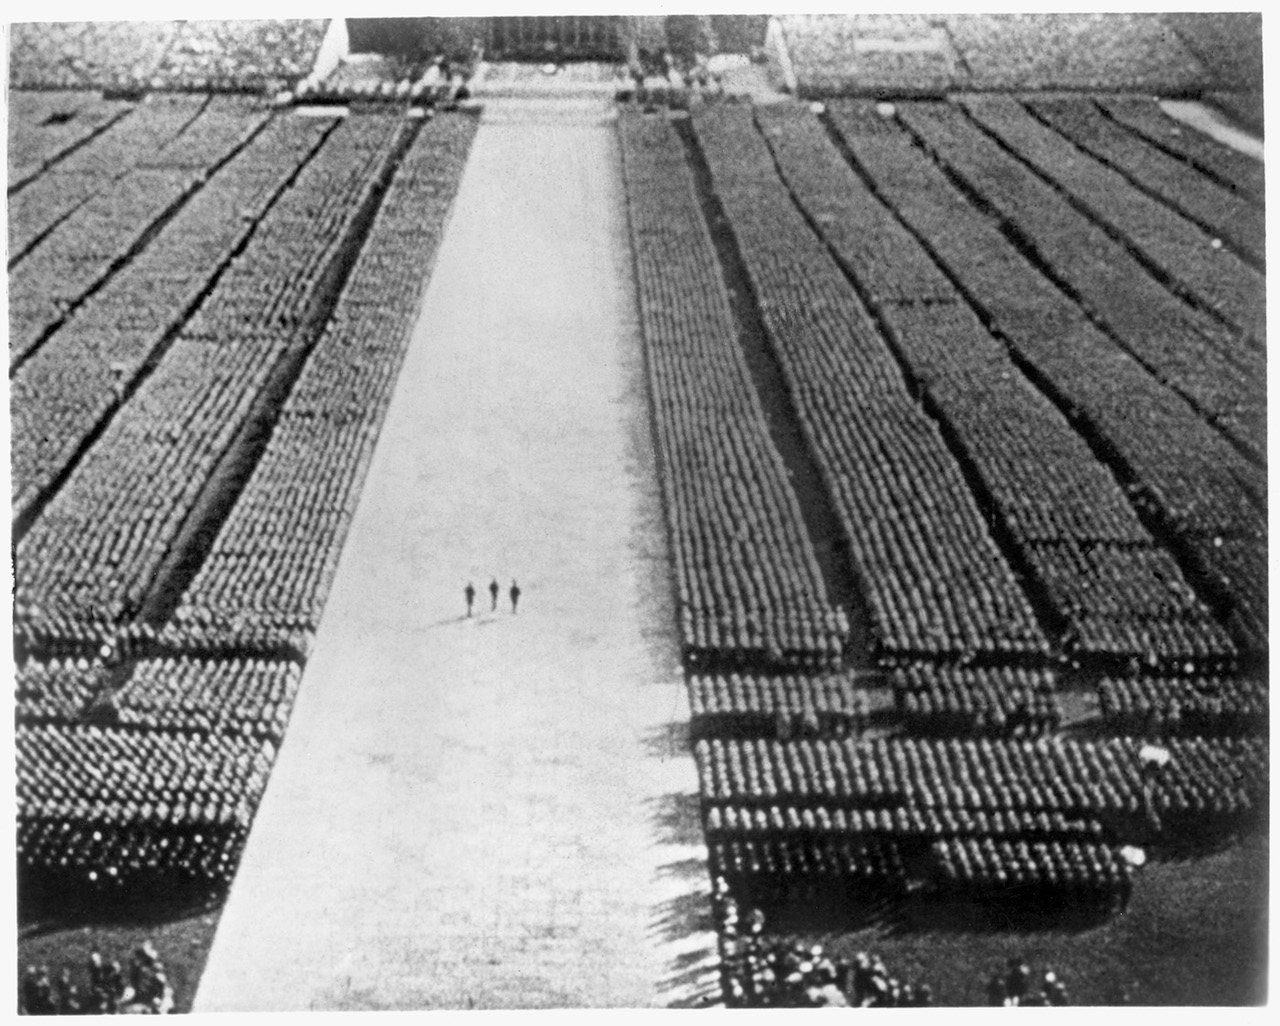 Still from director Leni Riefenstahl's Triumph of the Will. The Museum of Modern Art Film Stills Collection.